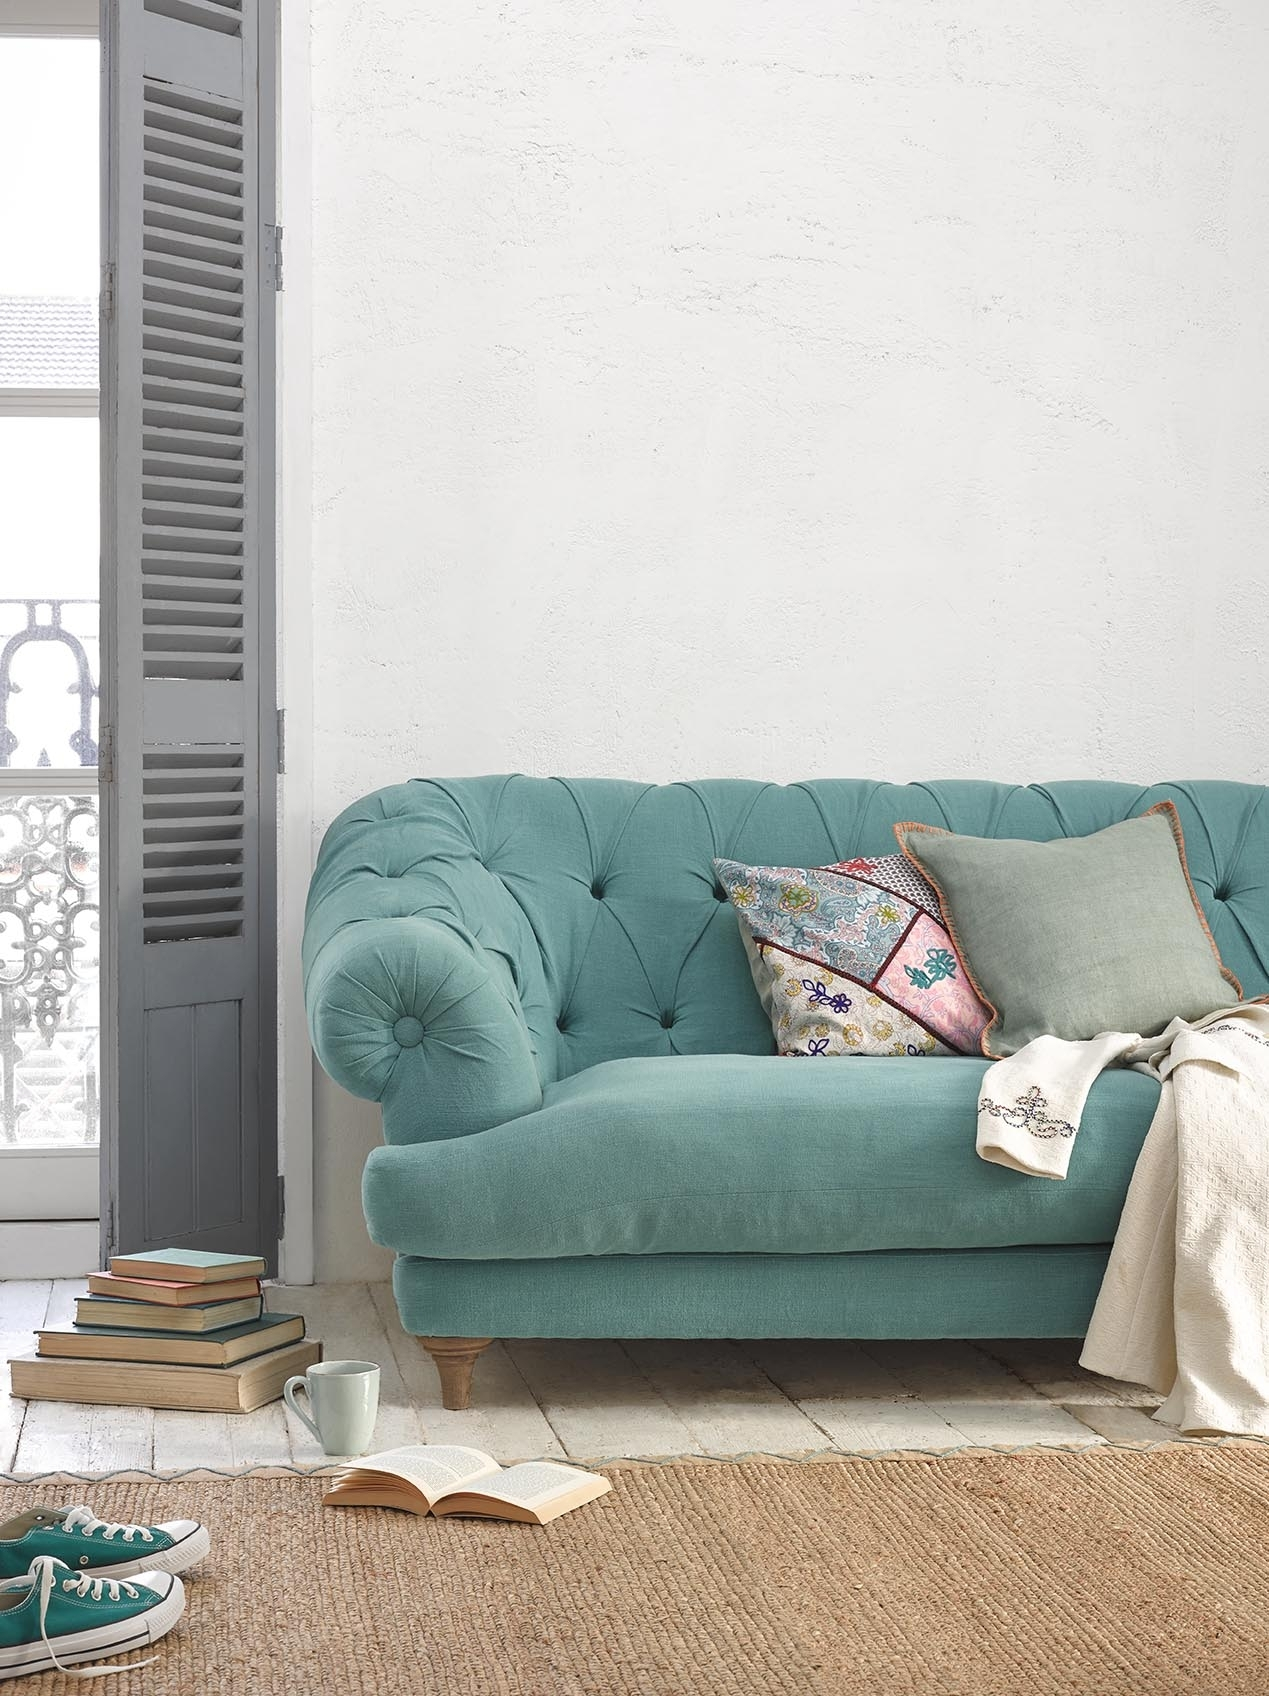 Bagsie Sofa | Chesterfield Style Sofa | Loaf Within Aqua Sofas (Image 4 of 10)